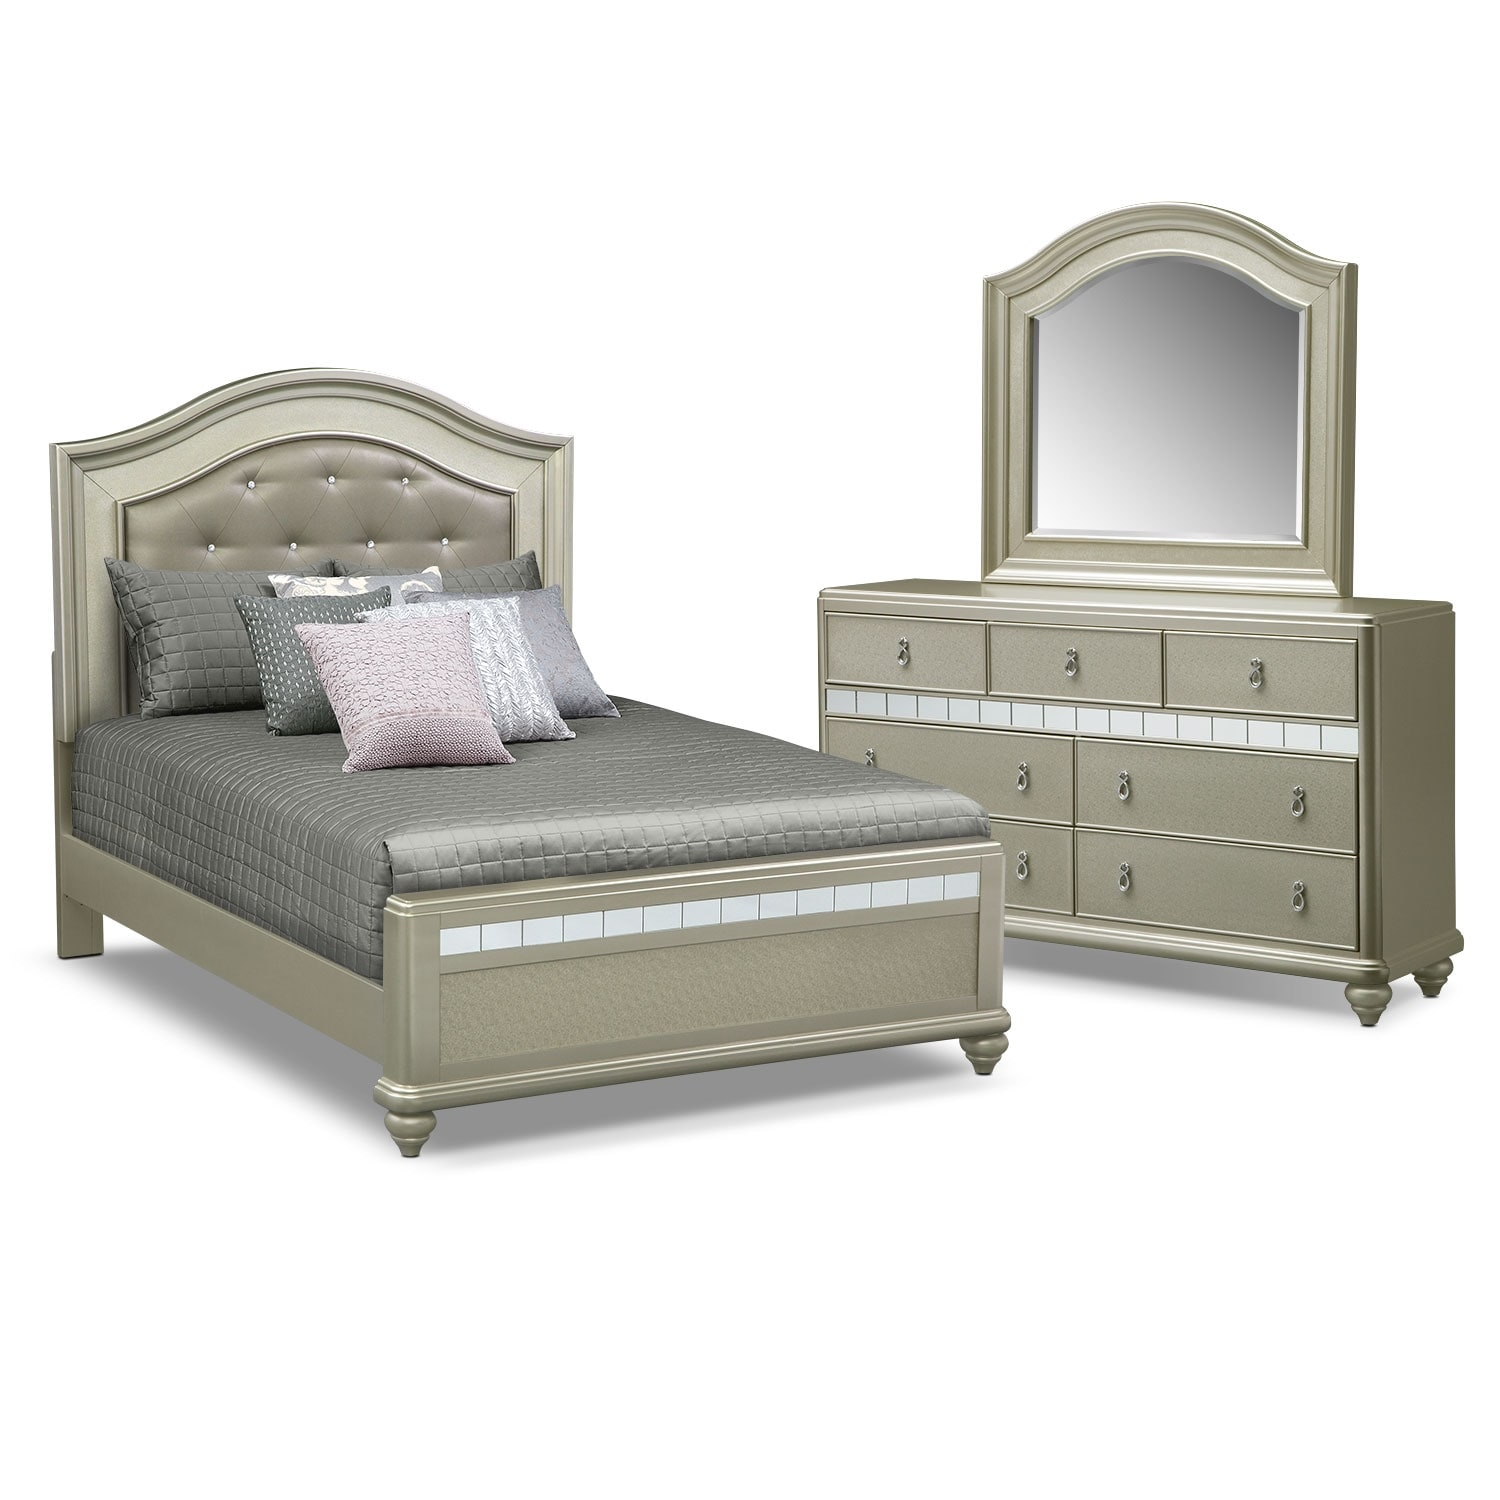 Serena Queen 5-Piece Bedroom Set - Platinum